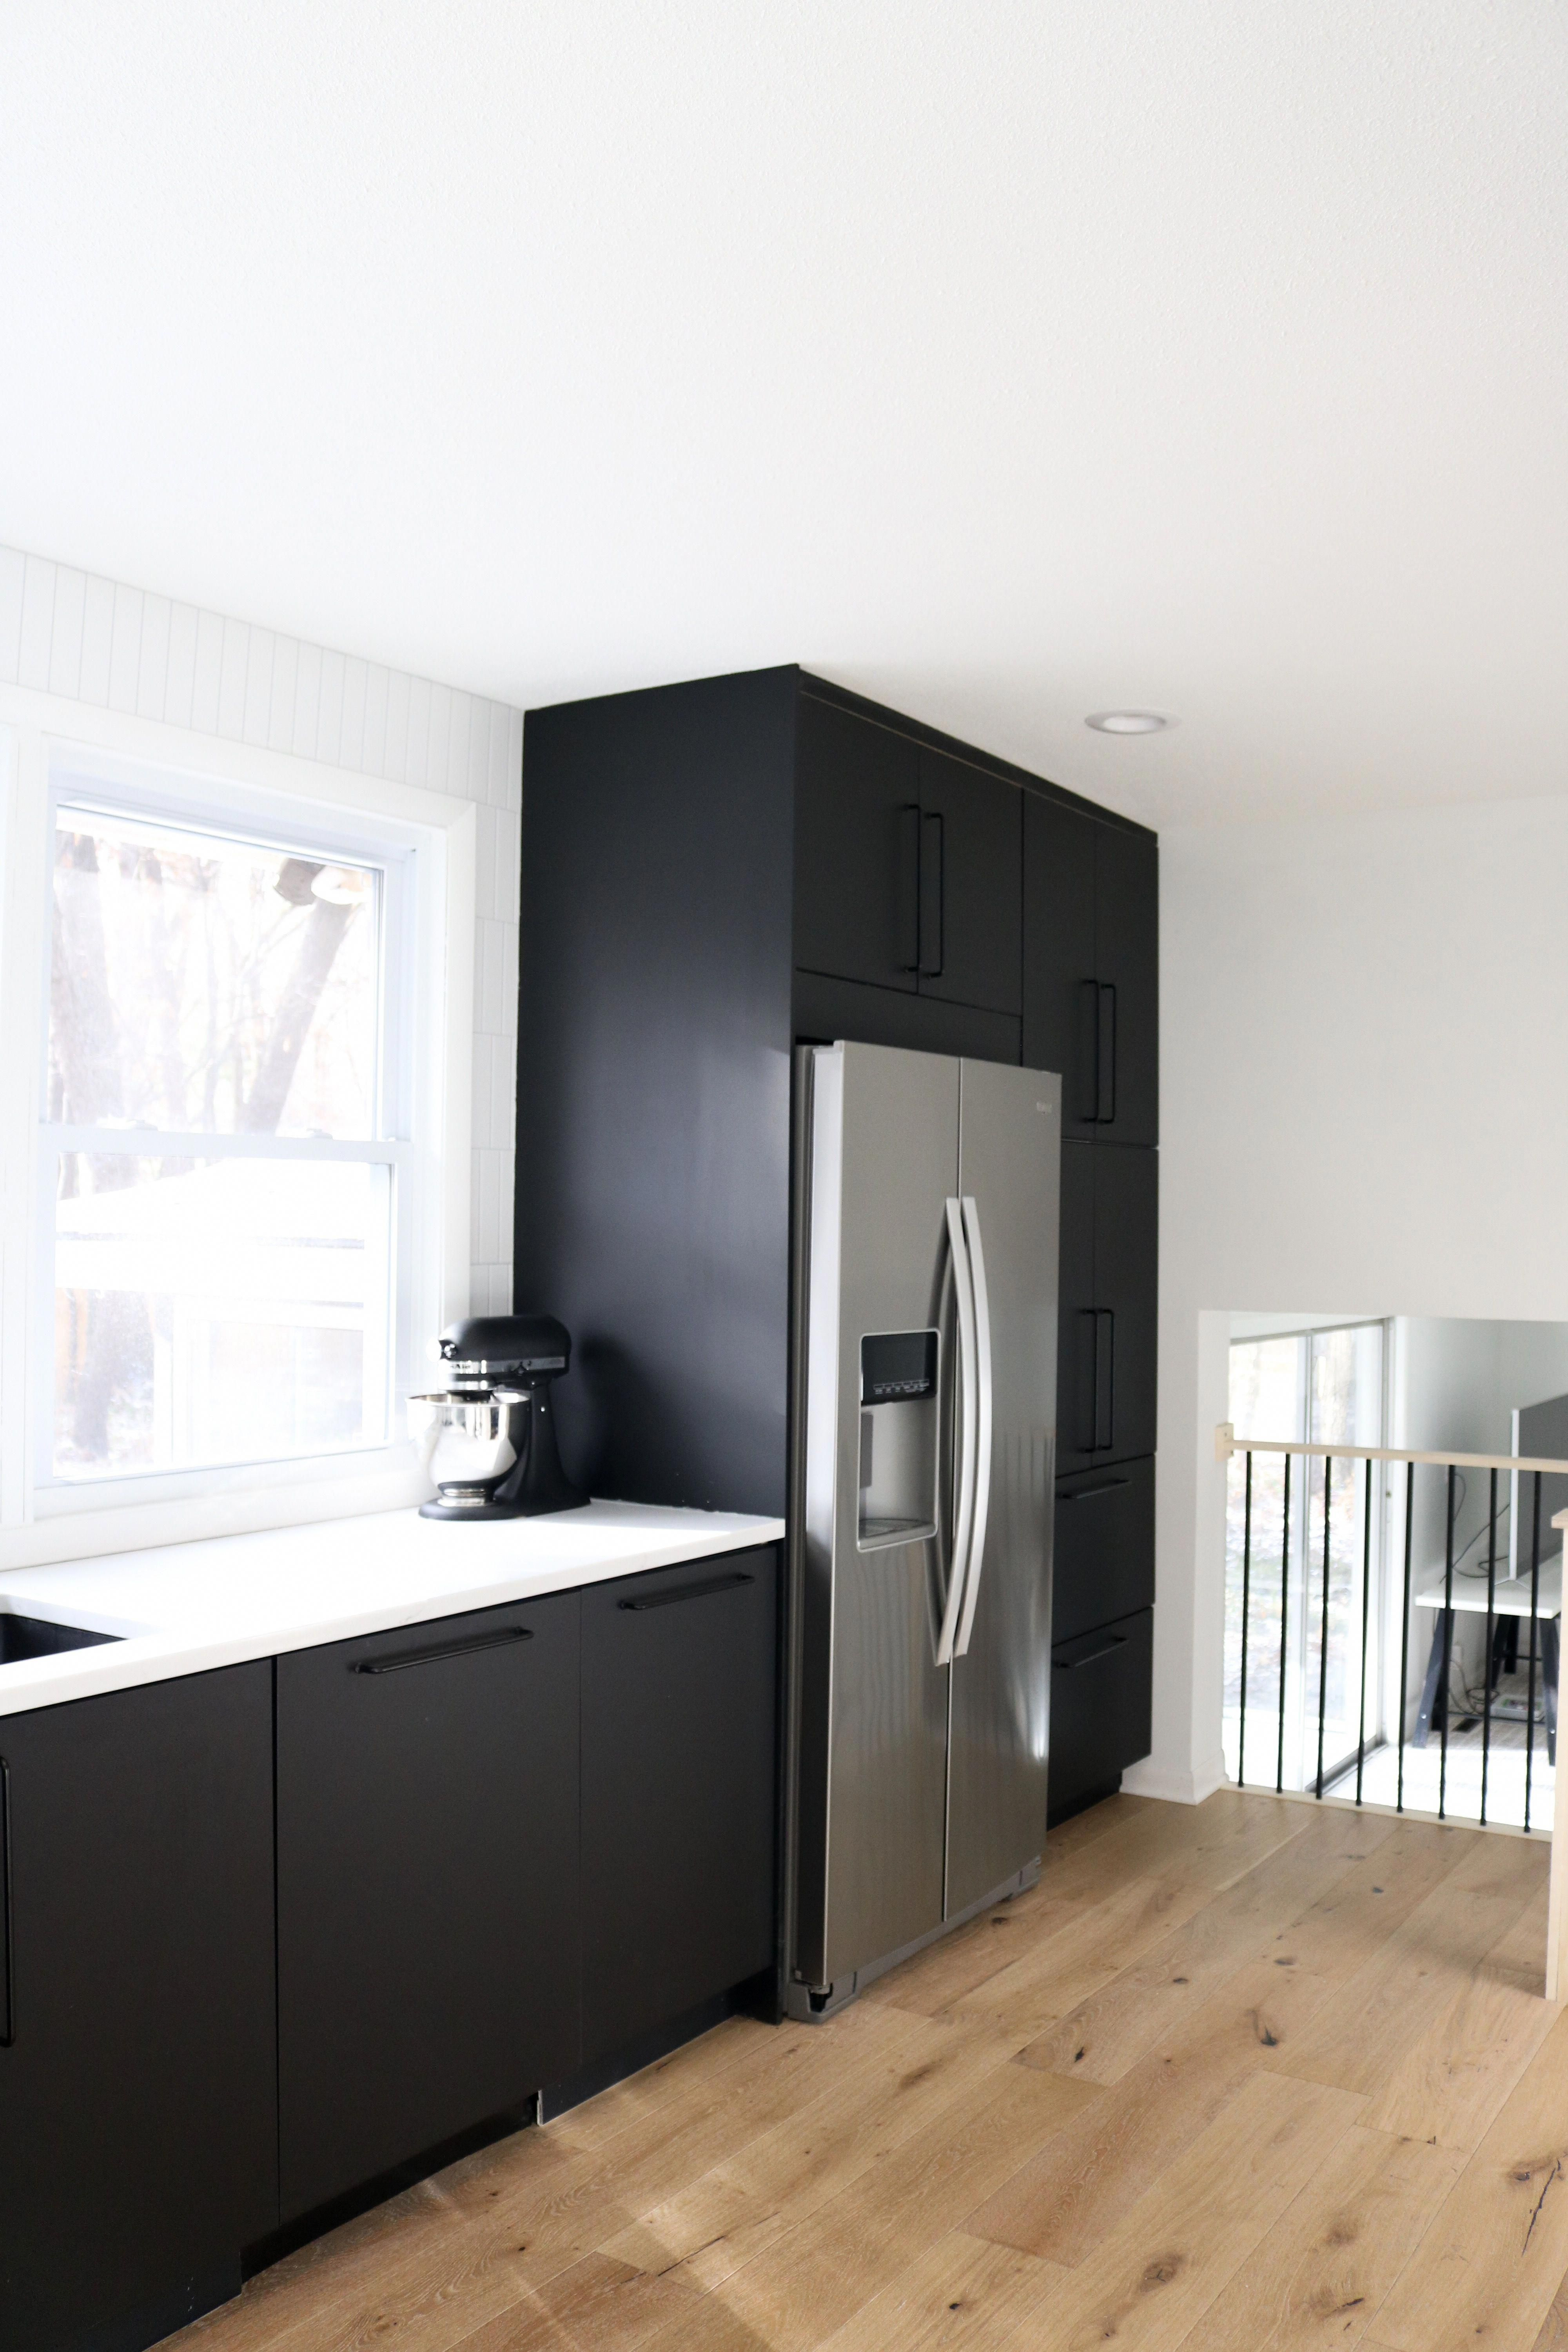 Ikea Kungsbacka Black Kitchen Cabinets Full Review Of Ikea Kitchen And New Matte Ikeakitchen In 2020 Black Ikea Kitchen Black Kitchen Cabinets Ikea Cabinets